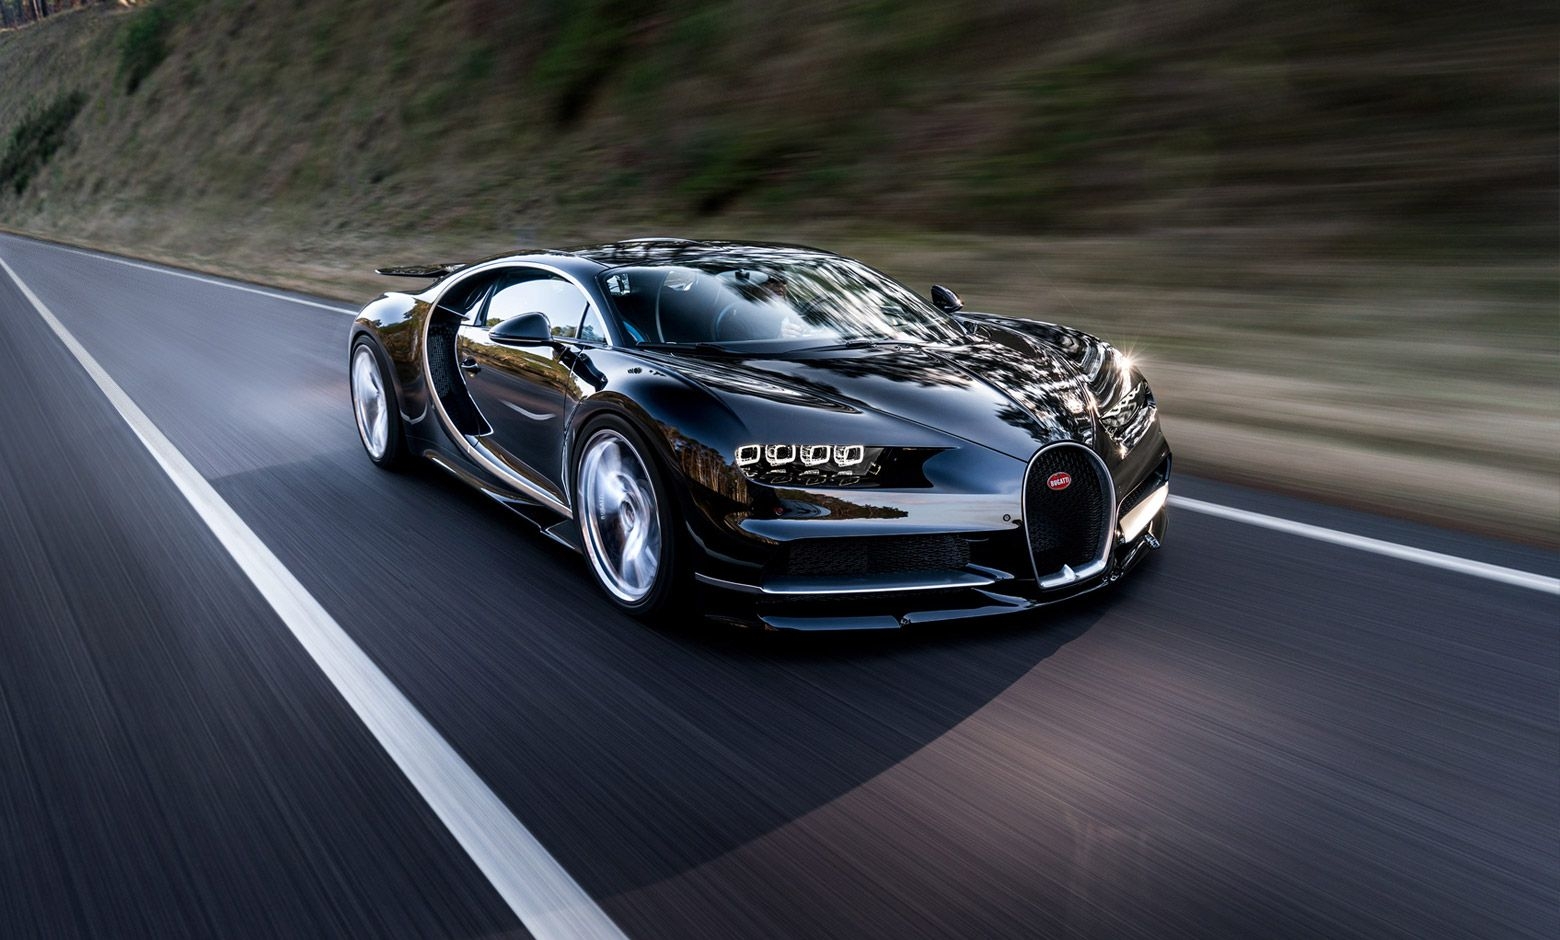 The bugatti chiron is will attempt to achieve a top speed record of 288mph in 2018